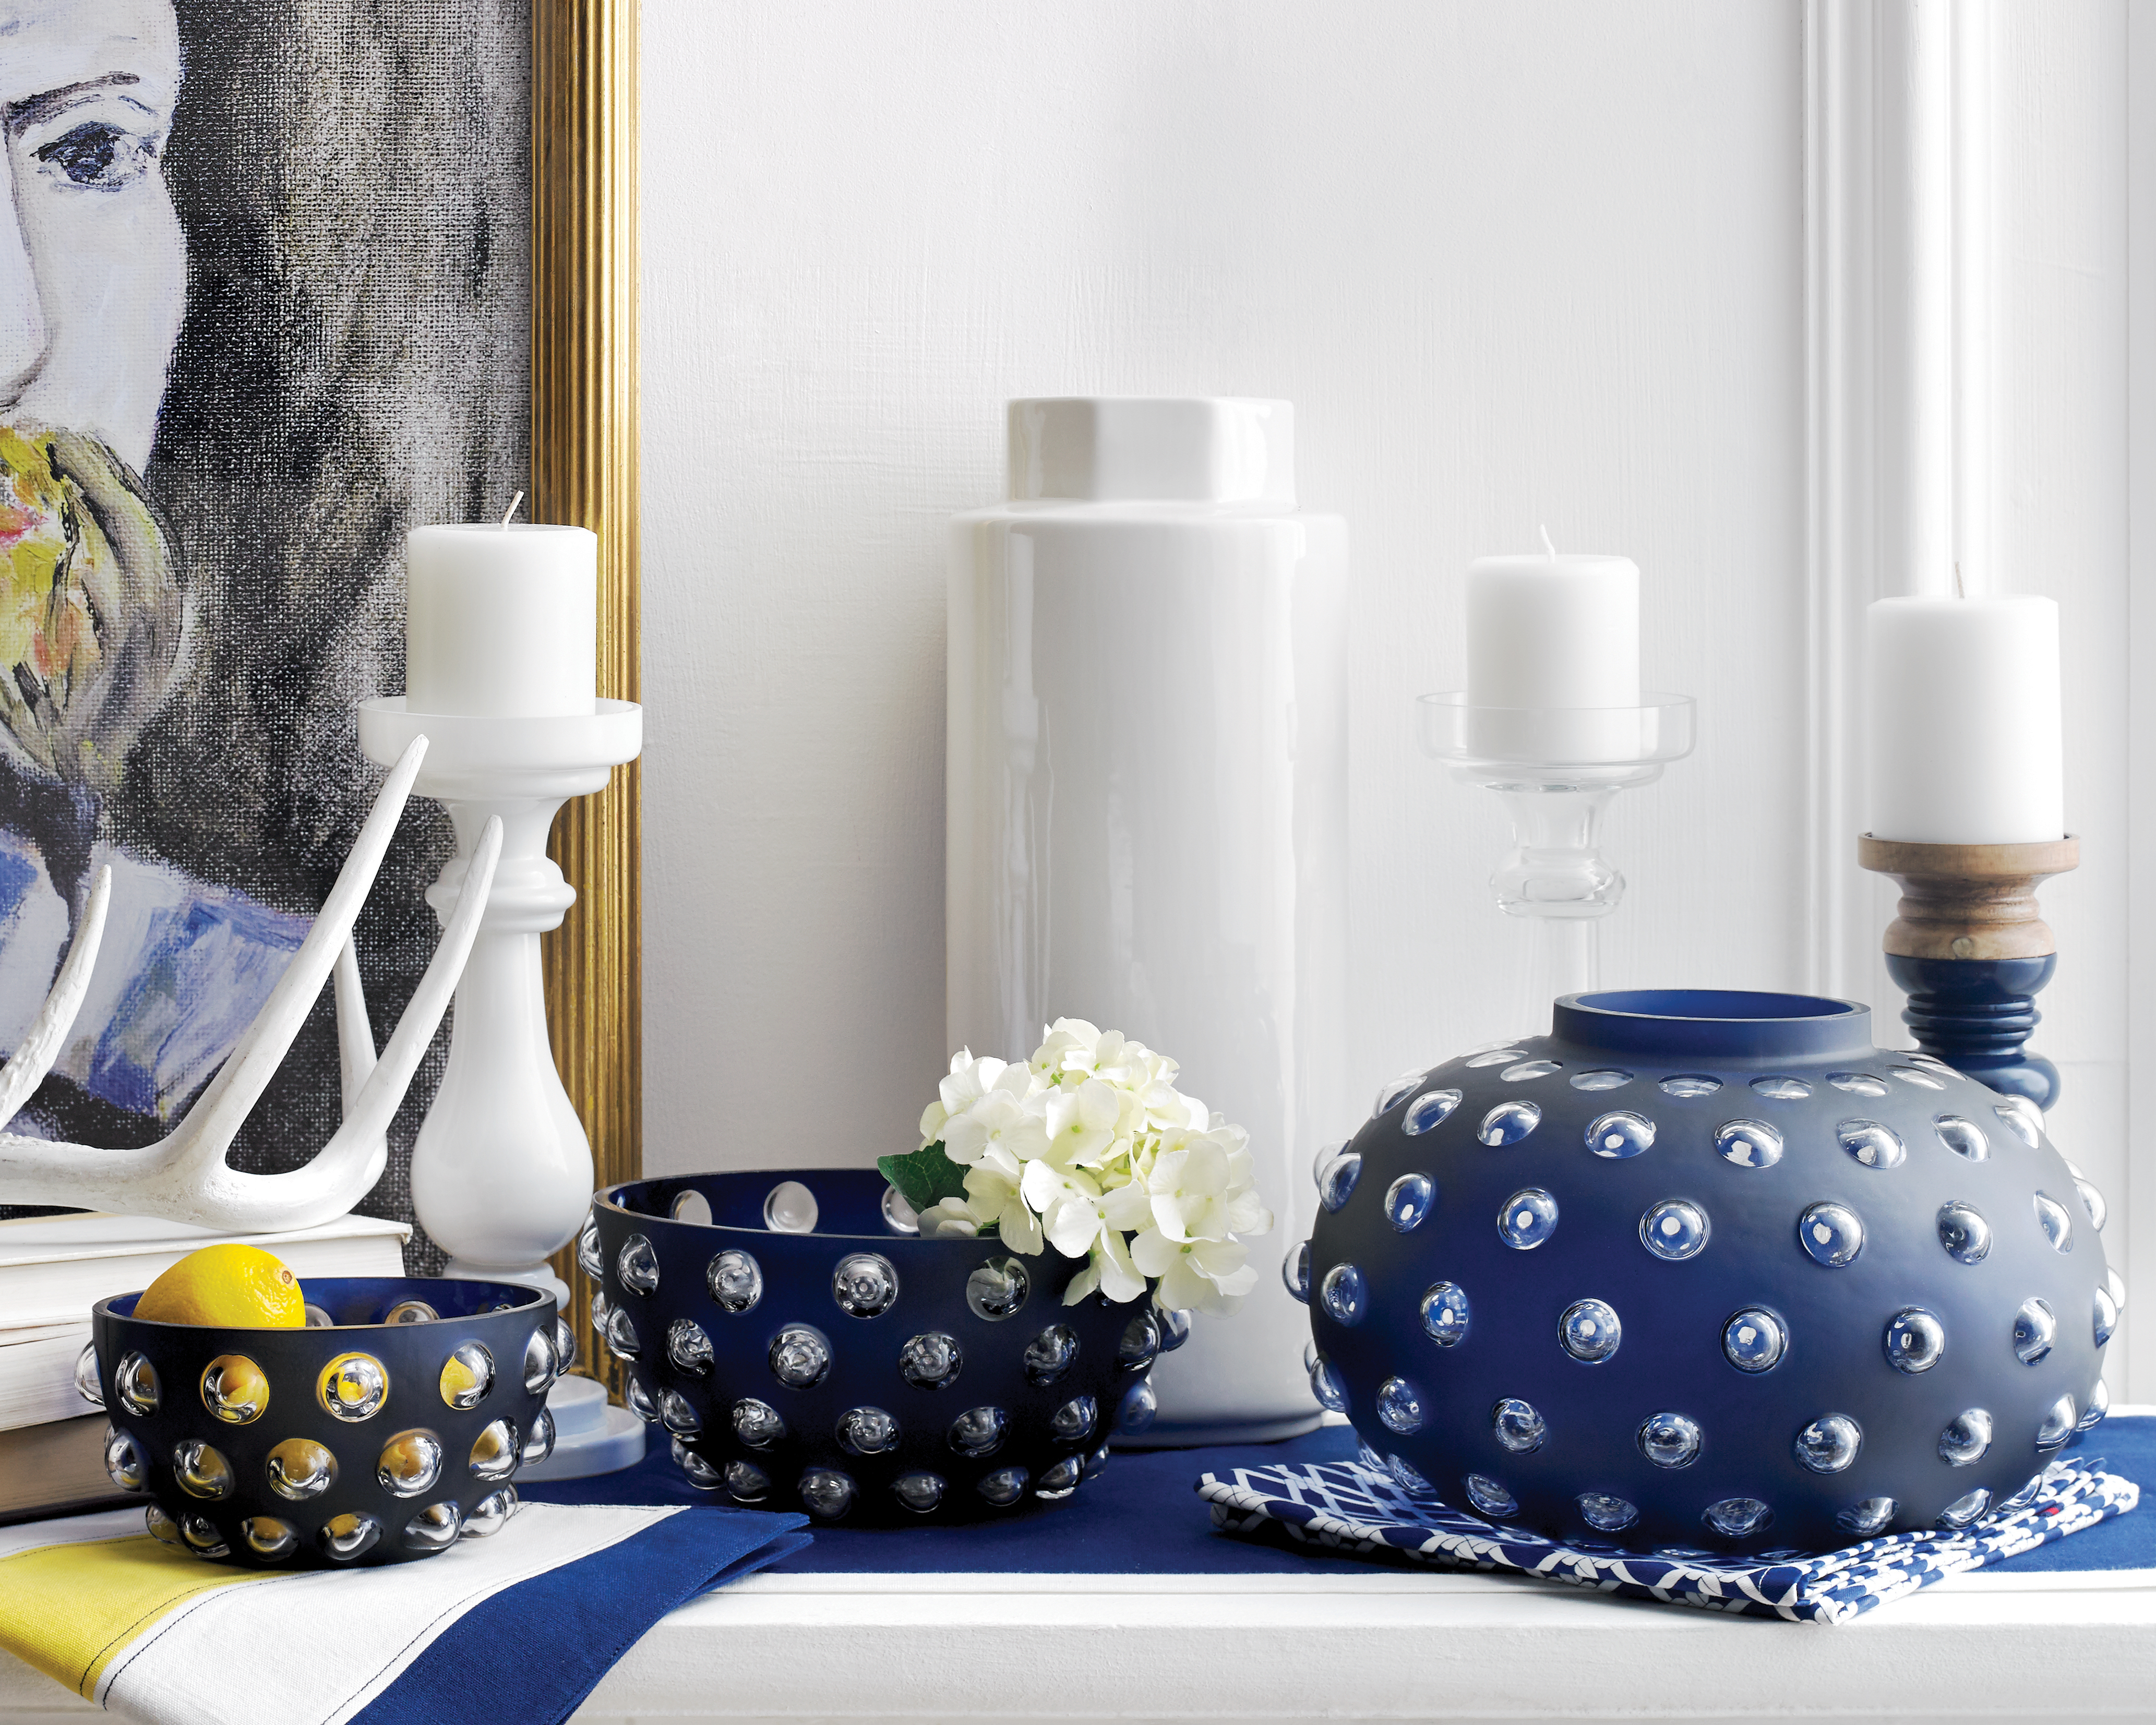 Tommy Hilfiger Announces Expanded Home Collection Through